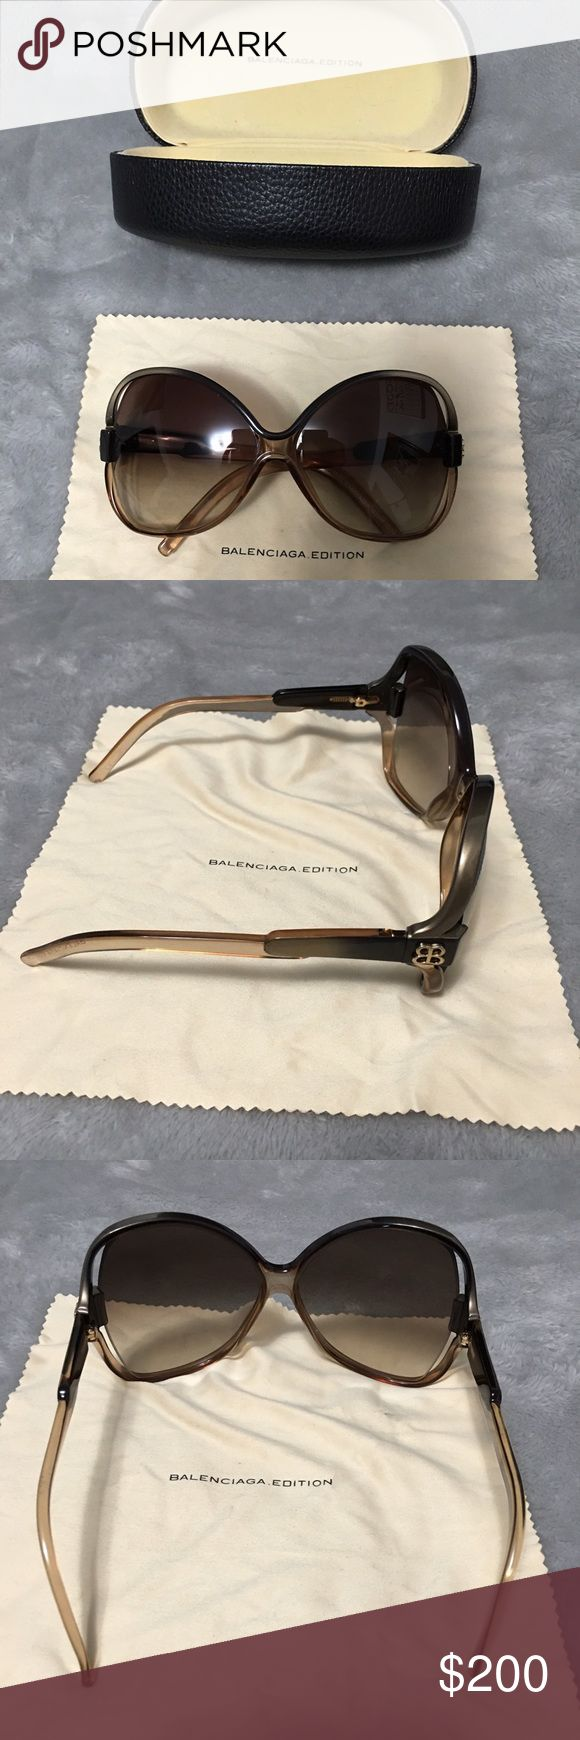 Oversized Balenciaga sunglasses Beautiful Balenciaga 0065/S sunglasses worn by Kim Kardashian. These are my favorite sunglasses but am selling these to get a different color. These are in great condition. I didn't see any scratches on them. Balenciaga Accessories Sunglasses